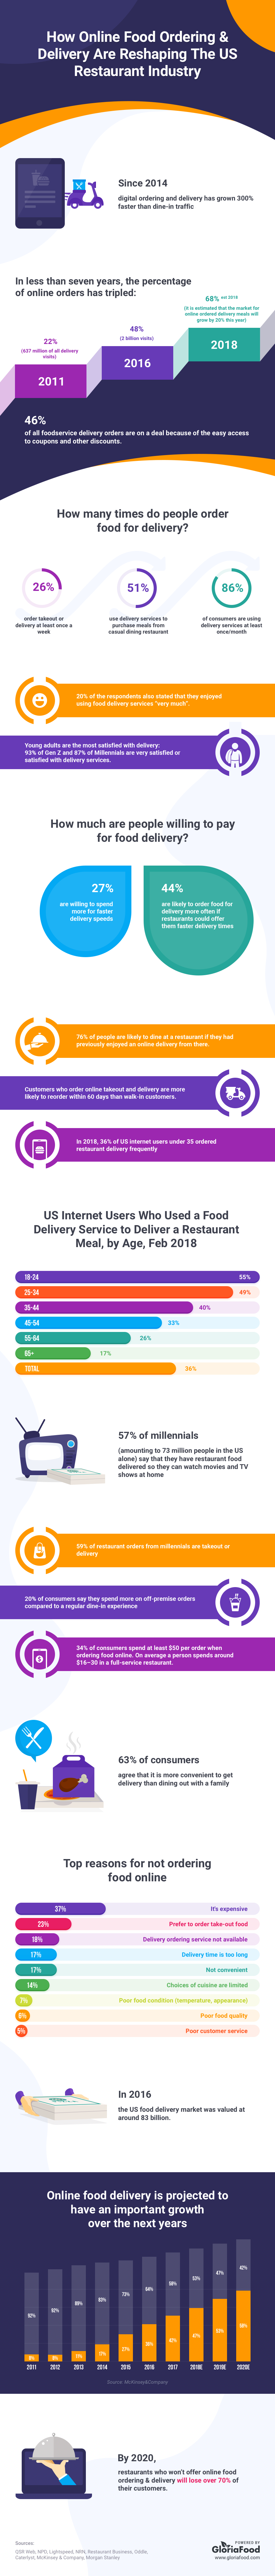 How Online Food Delivery Is Reshaping the Restaurant Industry #infographic